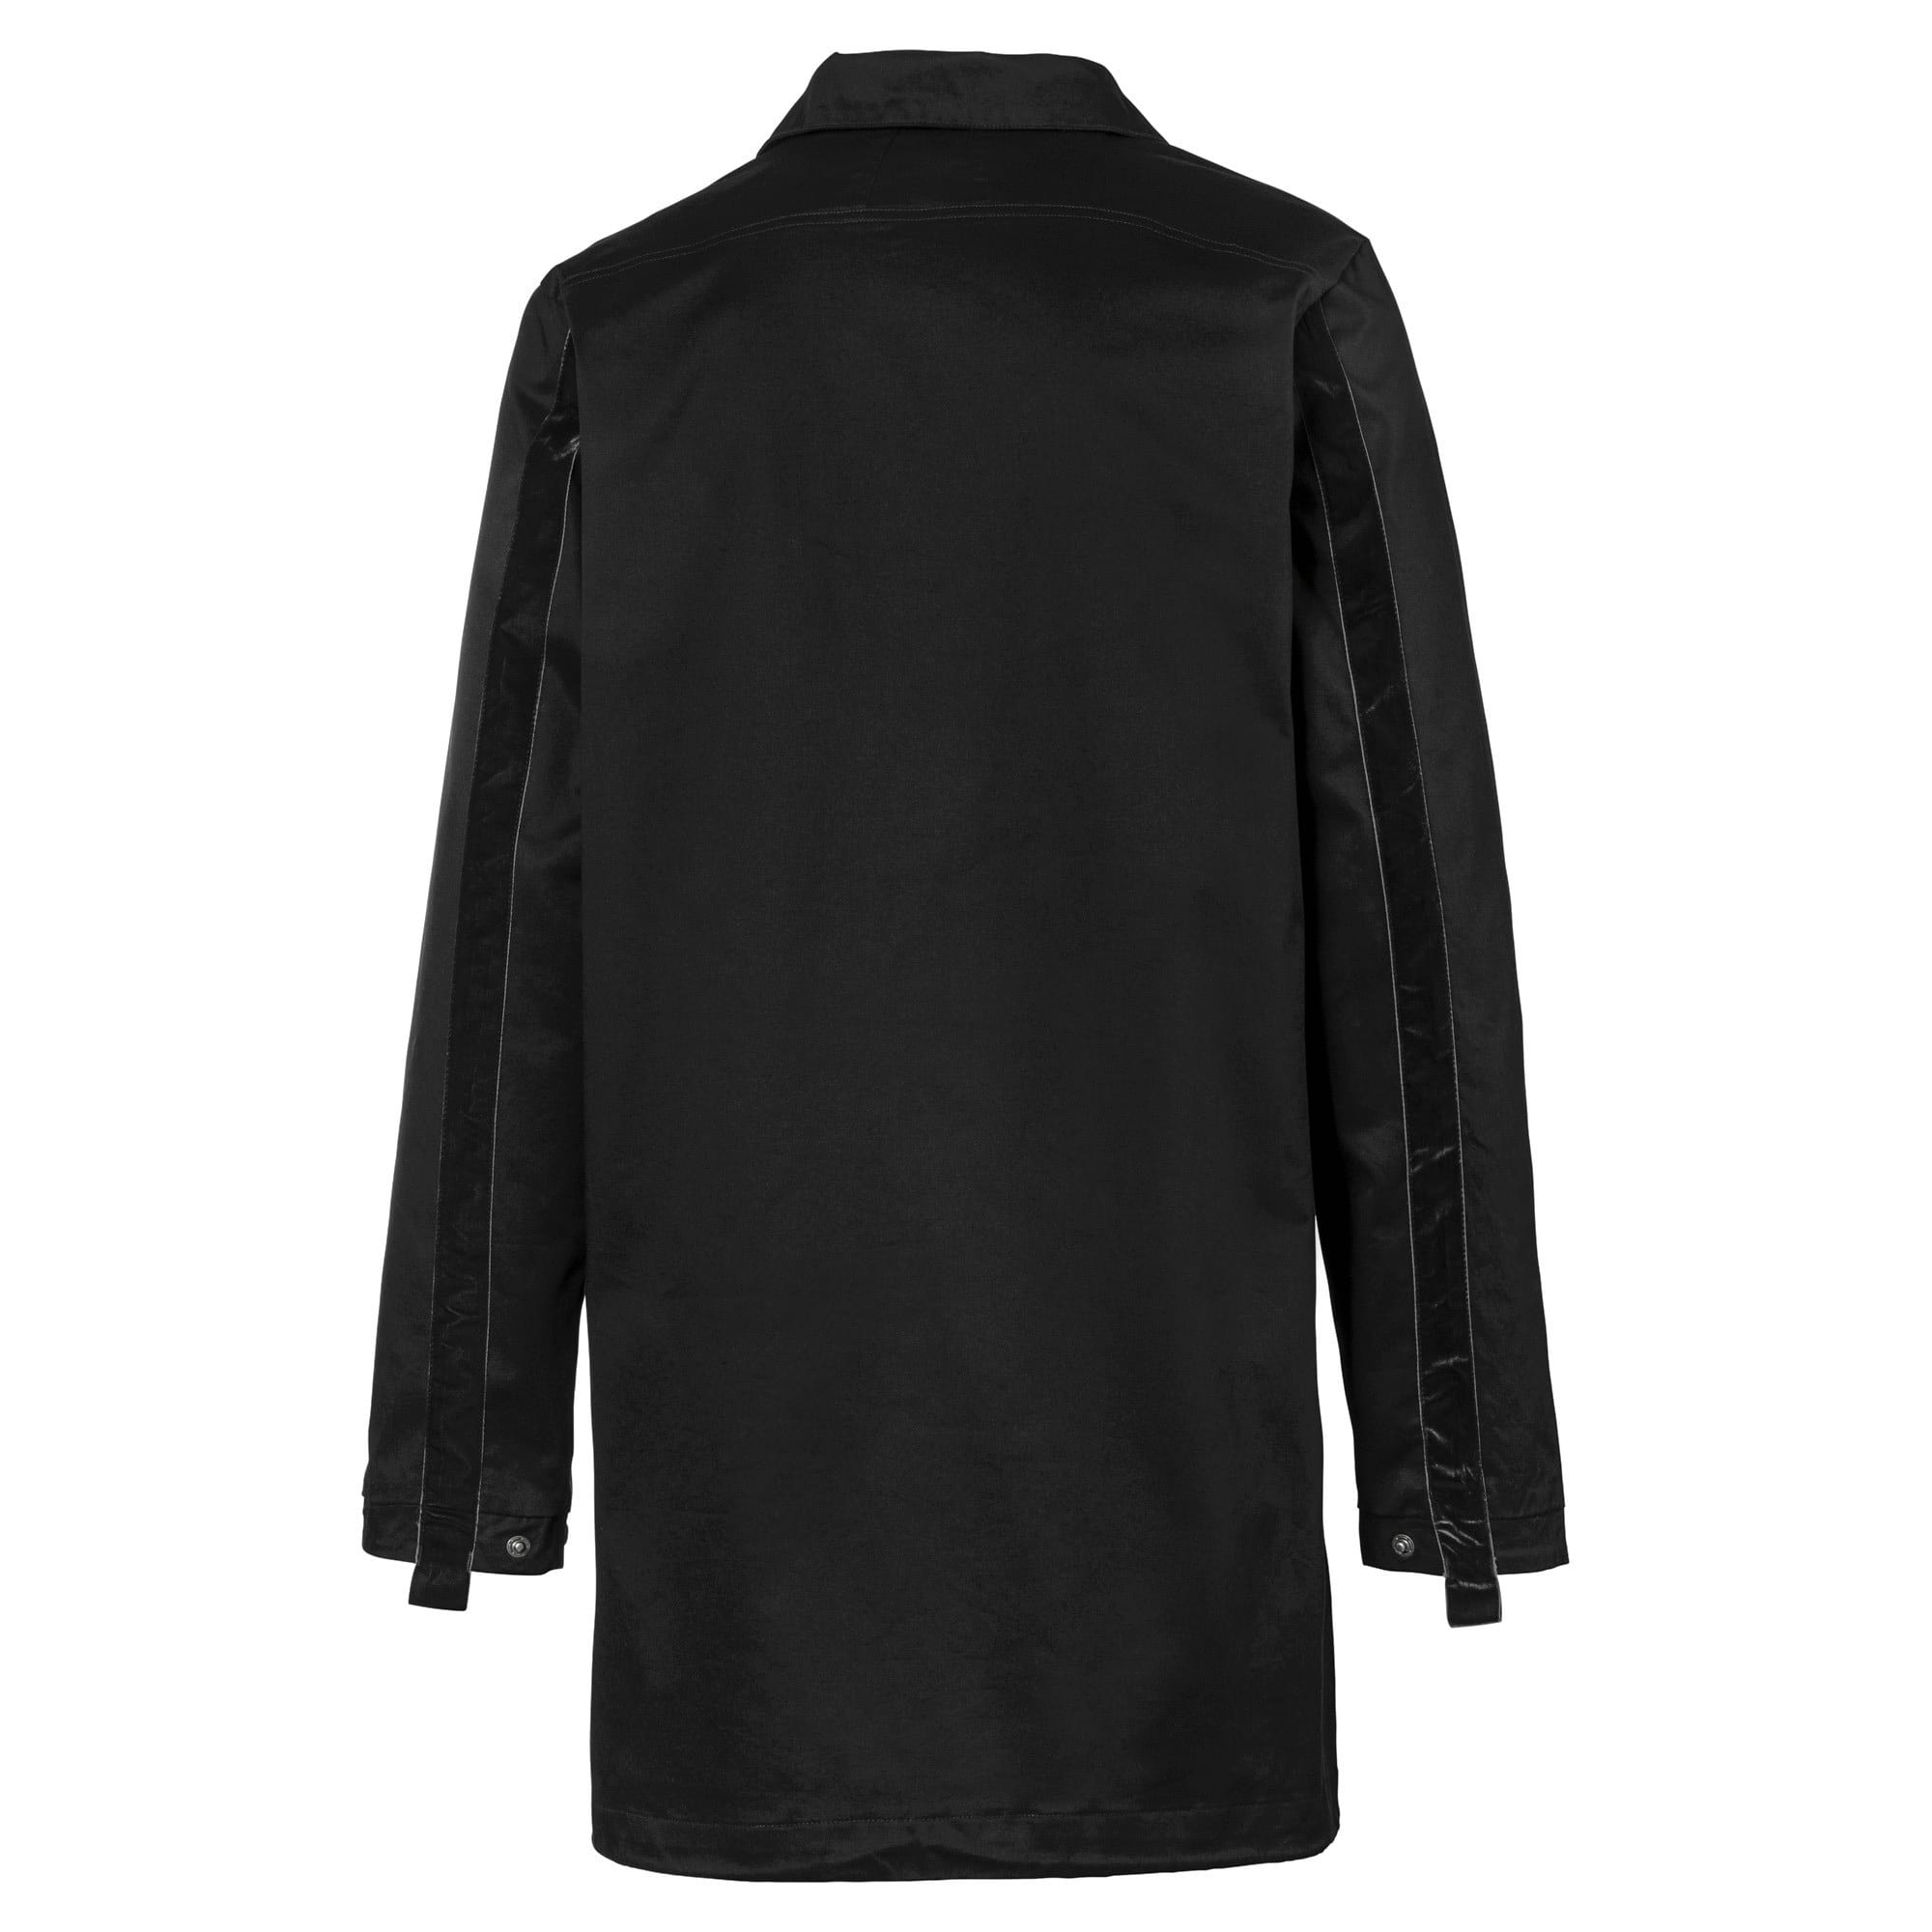 Thumbnail 1 of PUMA x RHUDE Men's Coat, Puma Black, medium